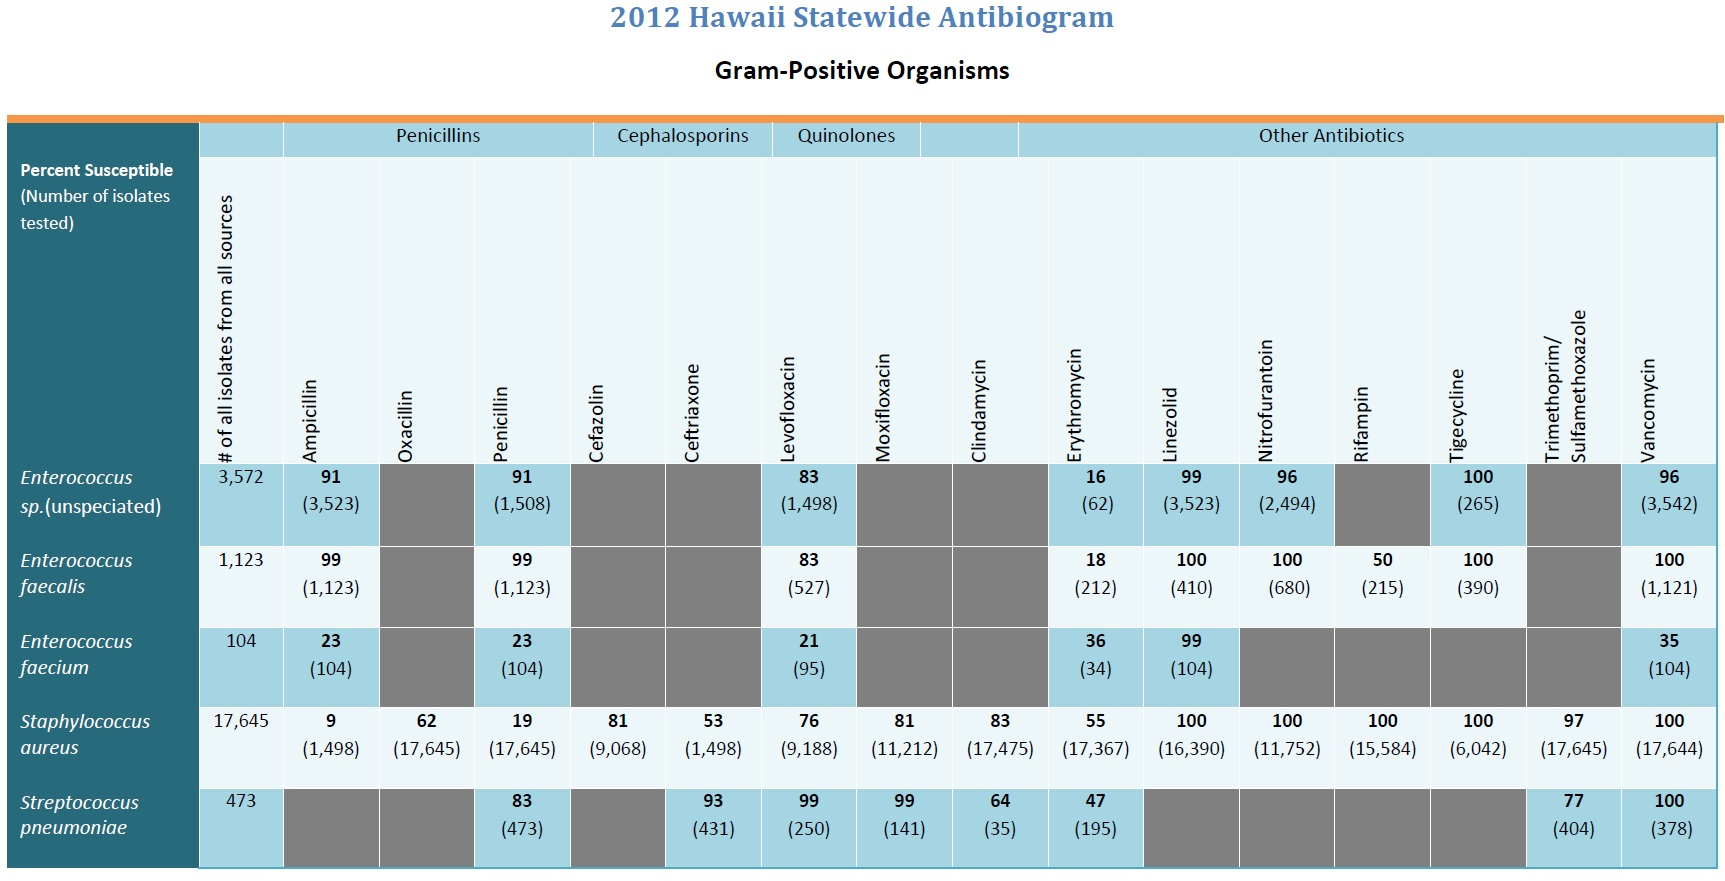 2012 Hawaii Statewide Antibiogram